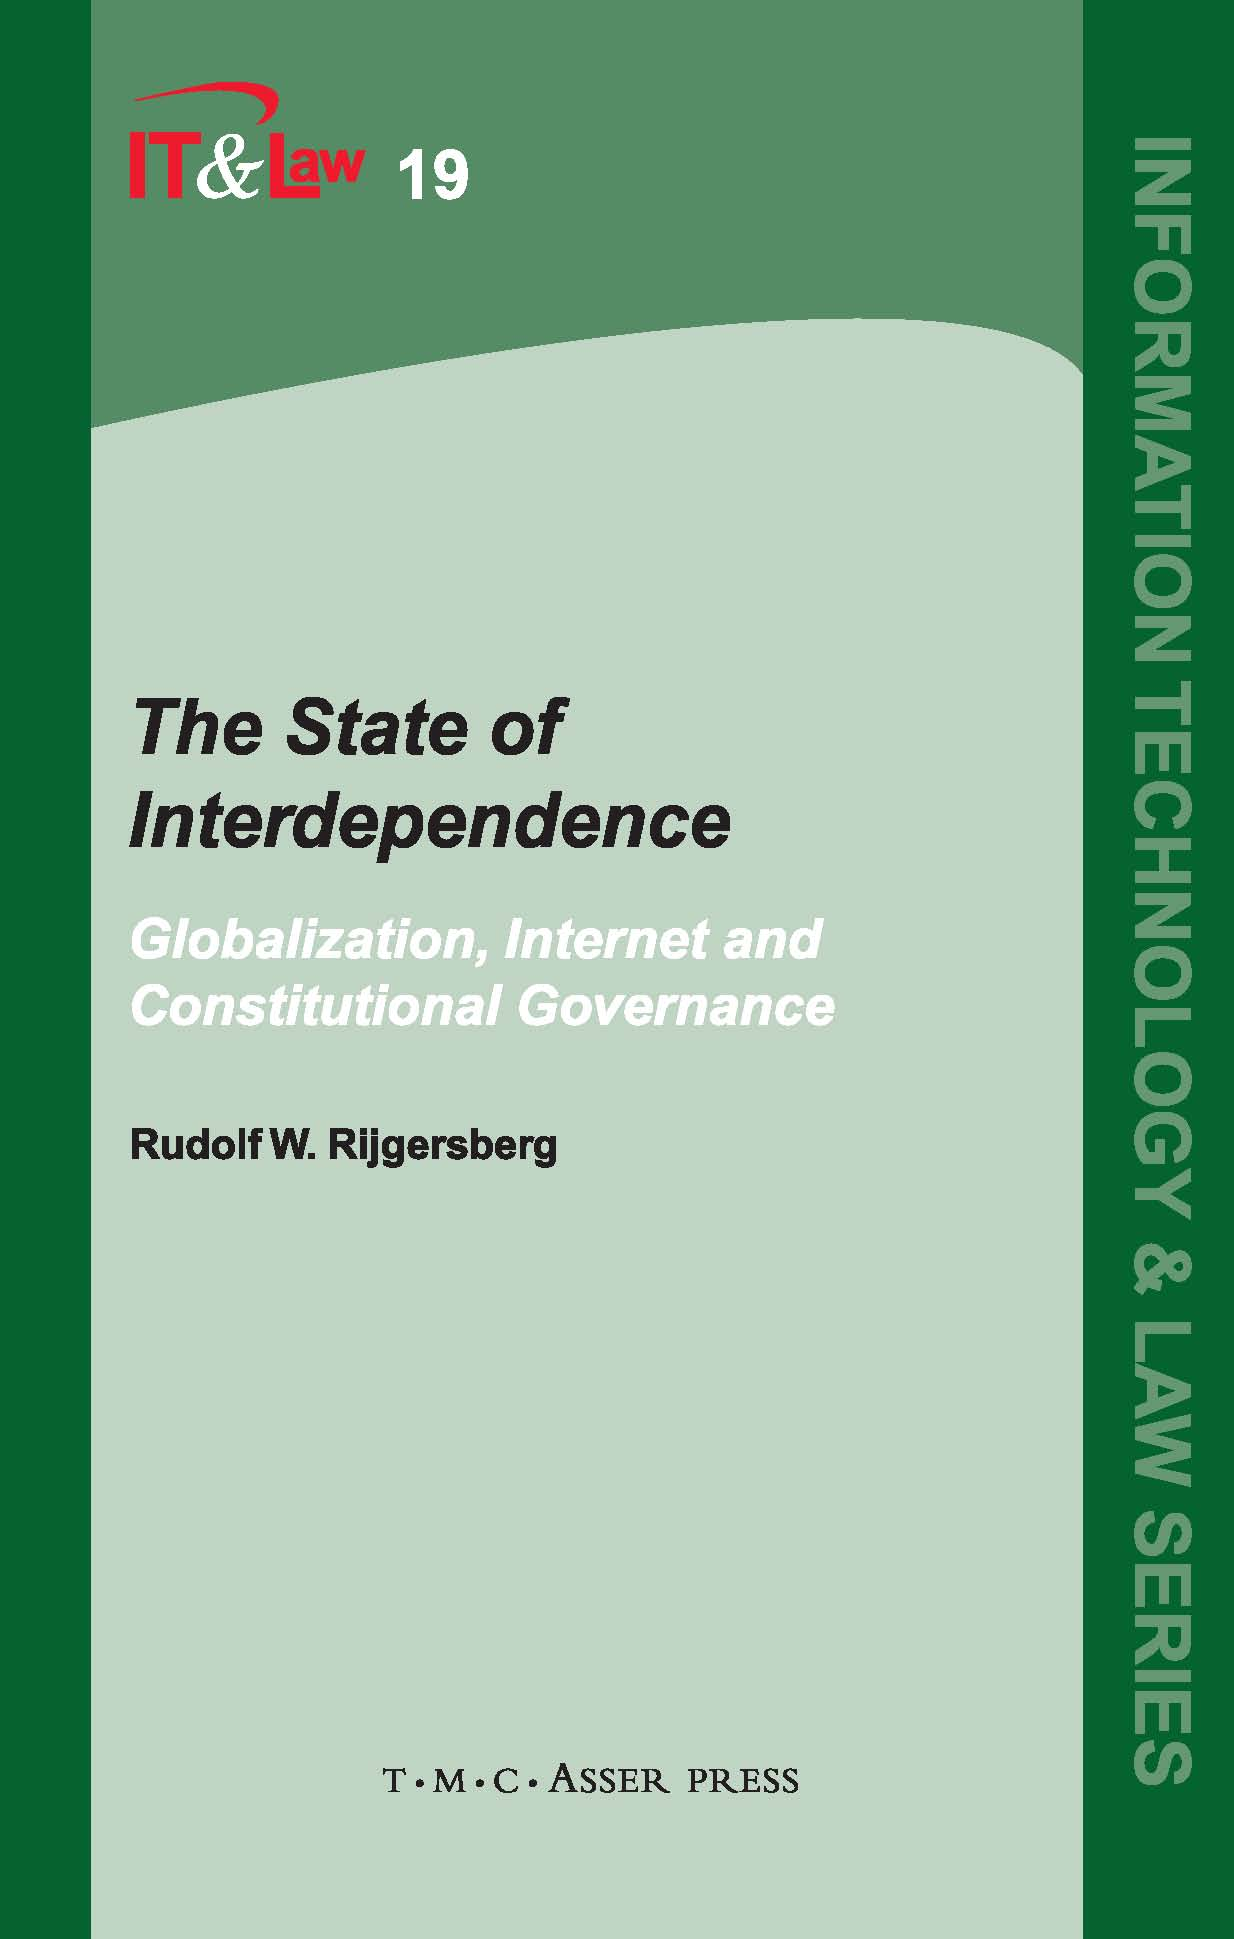 The State of Interdependence - Globalization, Internet and Constitutional Governance